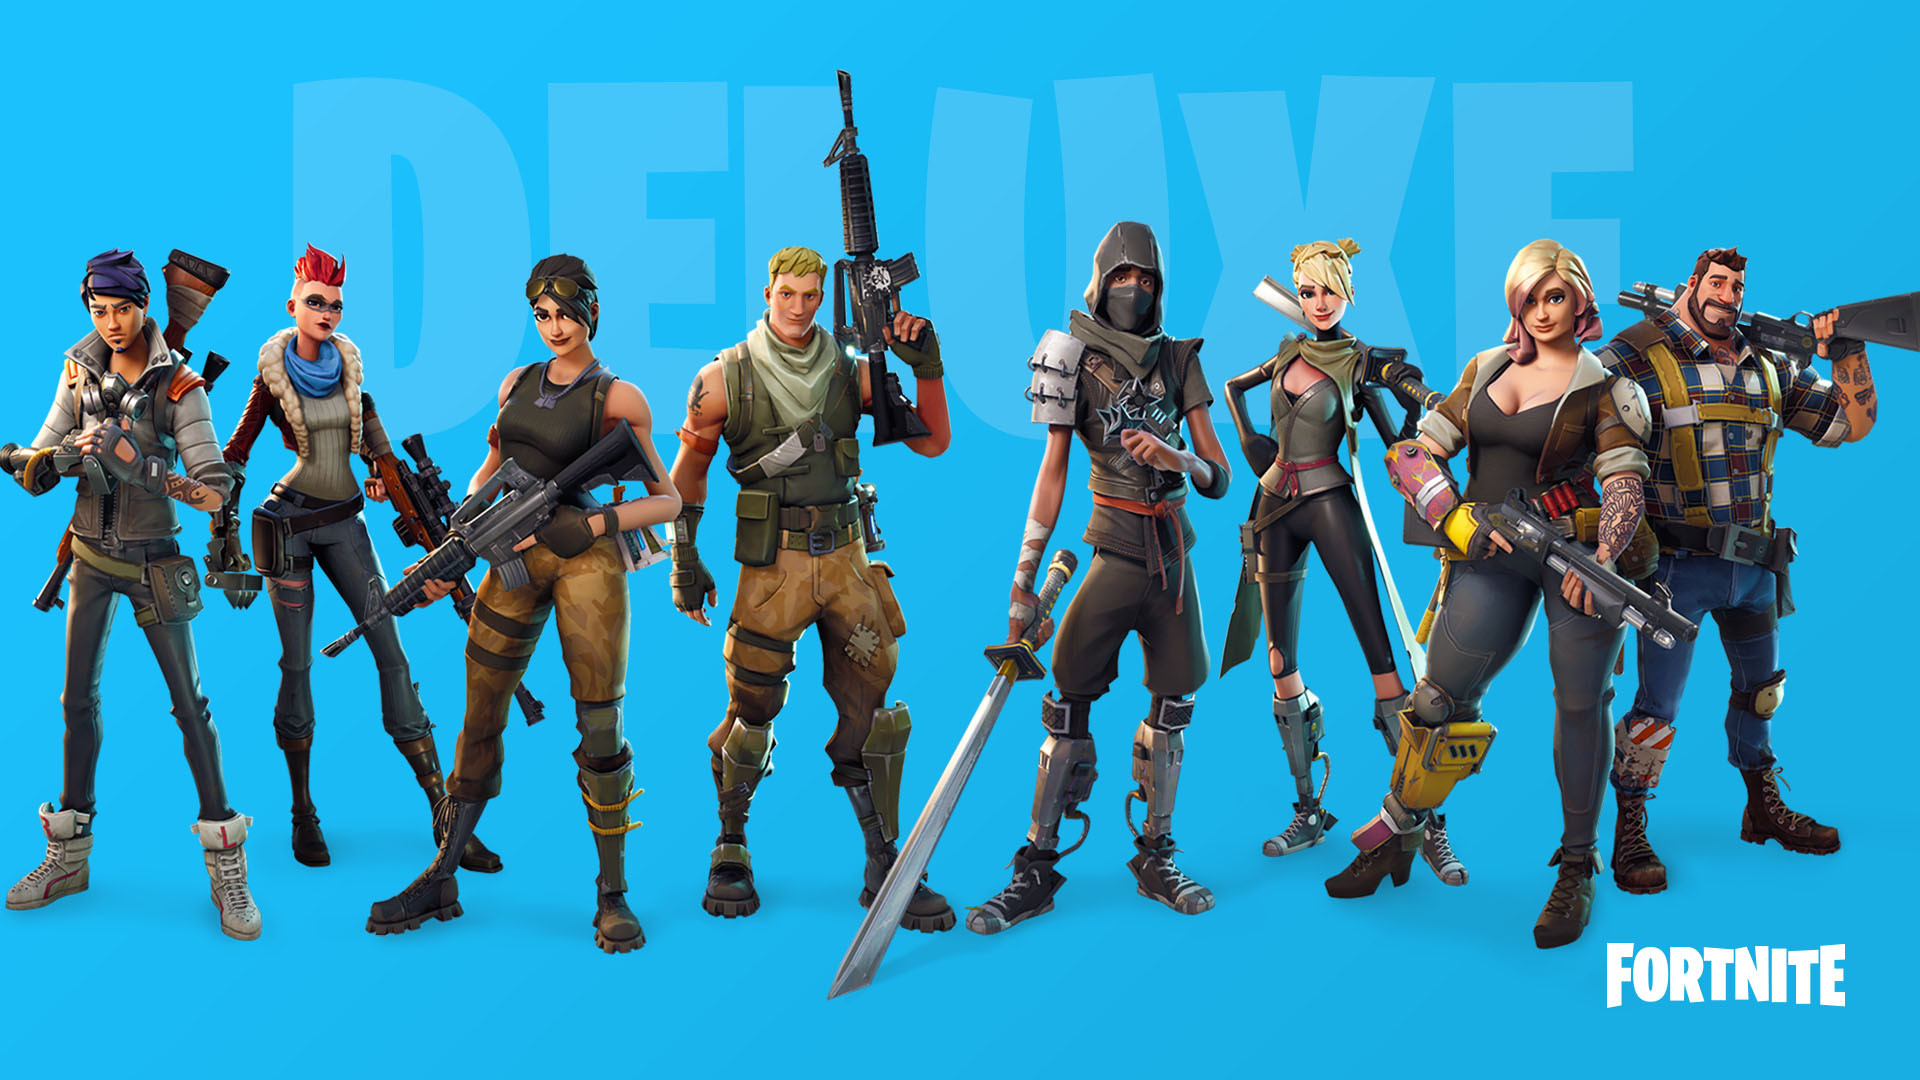 Fortnite%2Fblog%2Ffounders-packs-are-here%2FDeluxeFoundersPack_Fornite-1920x1080-eef07c32cda1fd351ddba542abf1531ef2e4e57d